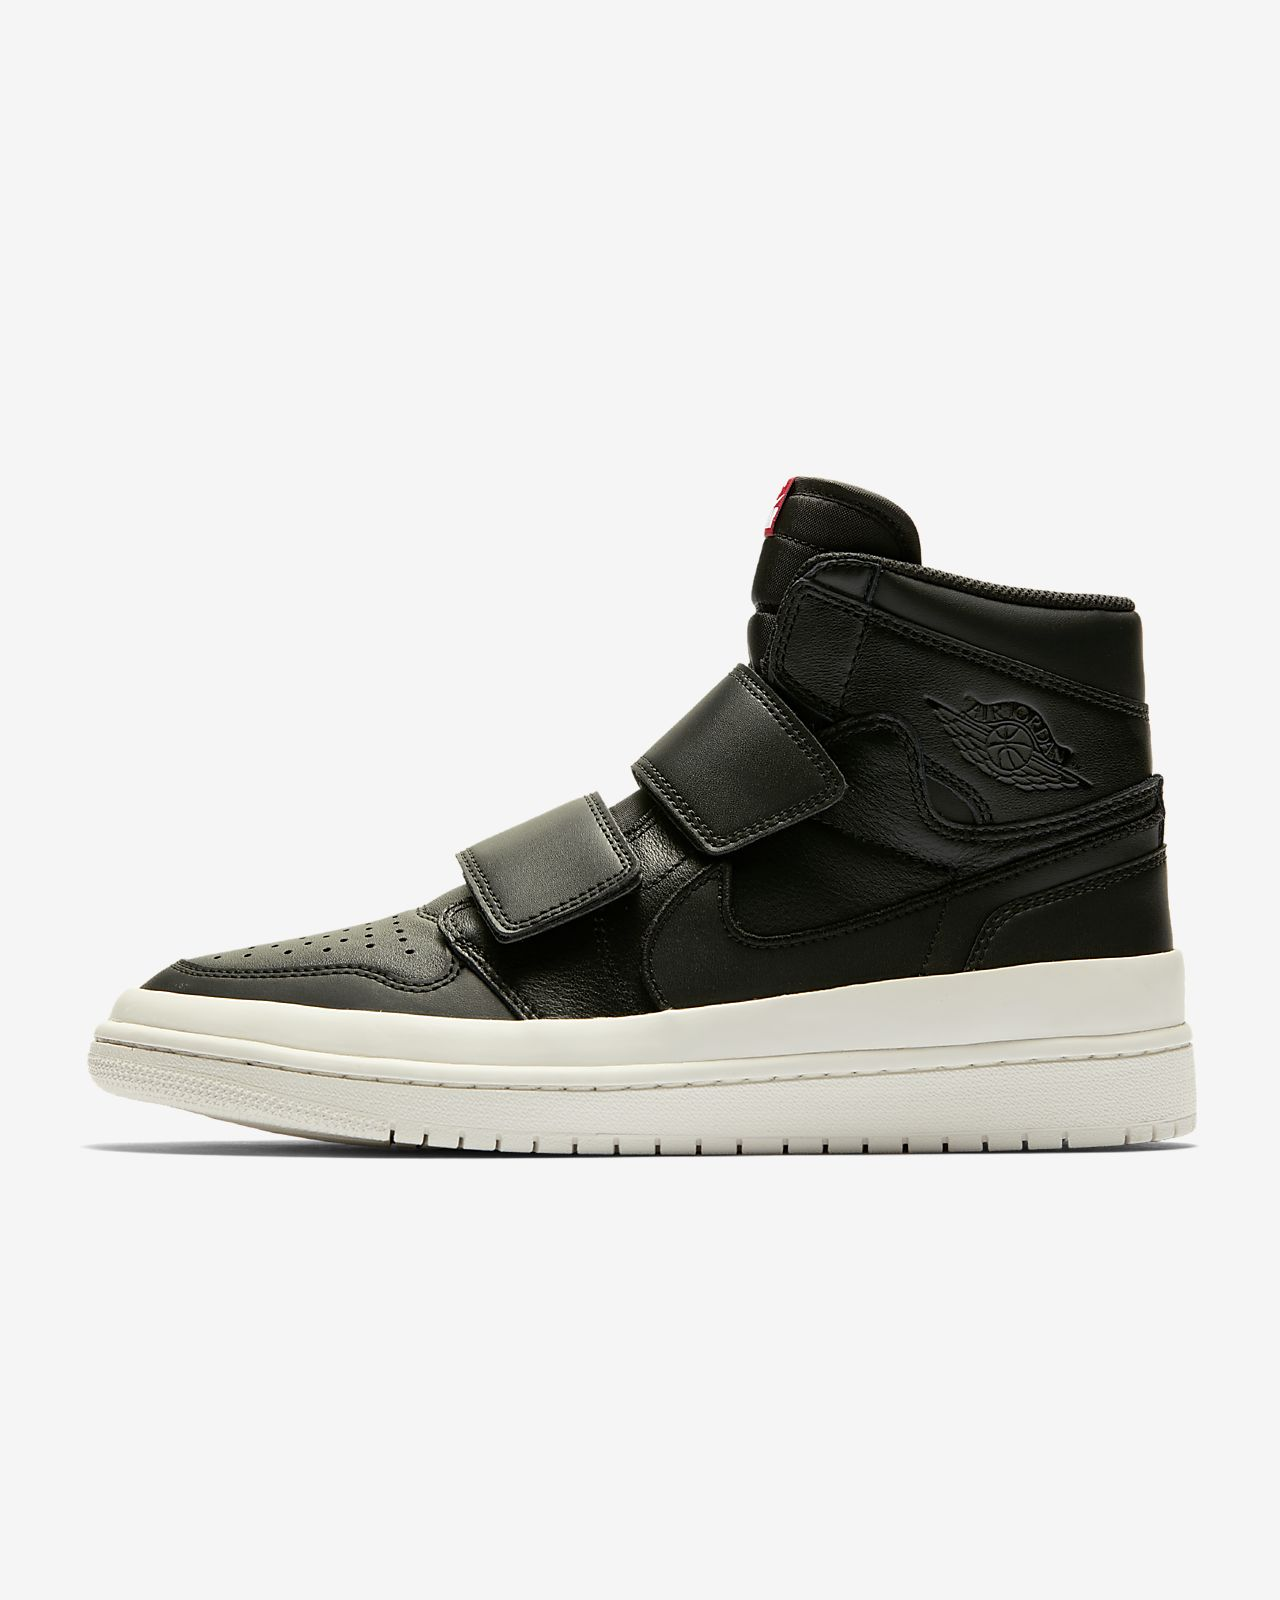 Buty męskie Air Jordan 1 Retro High Double Strap